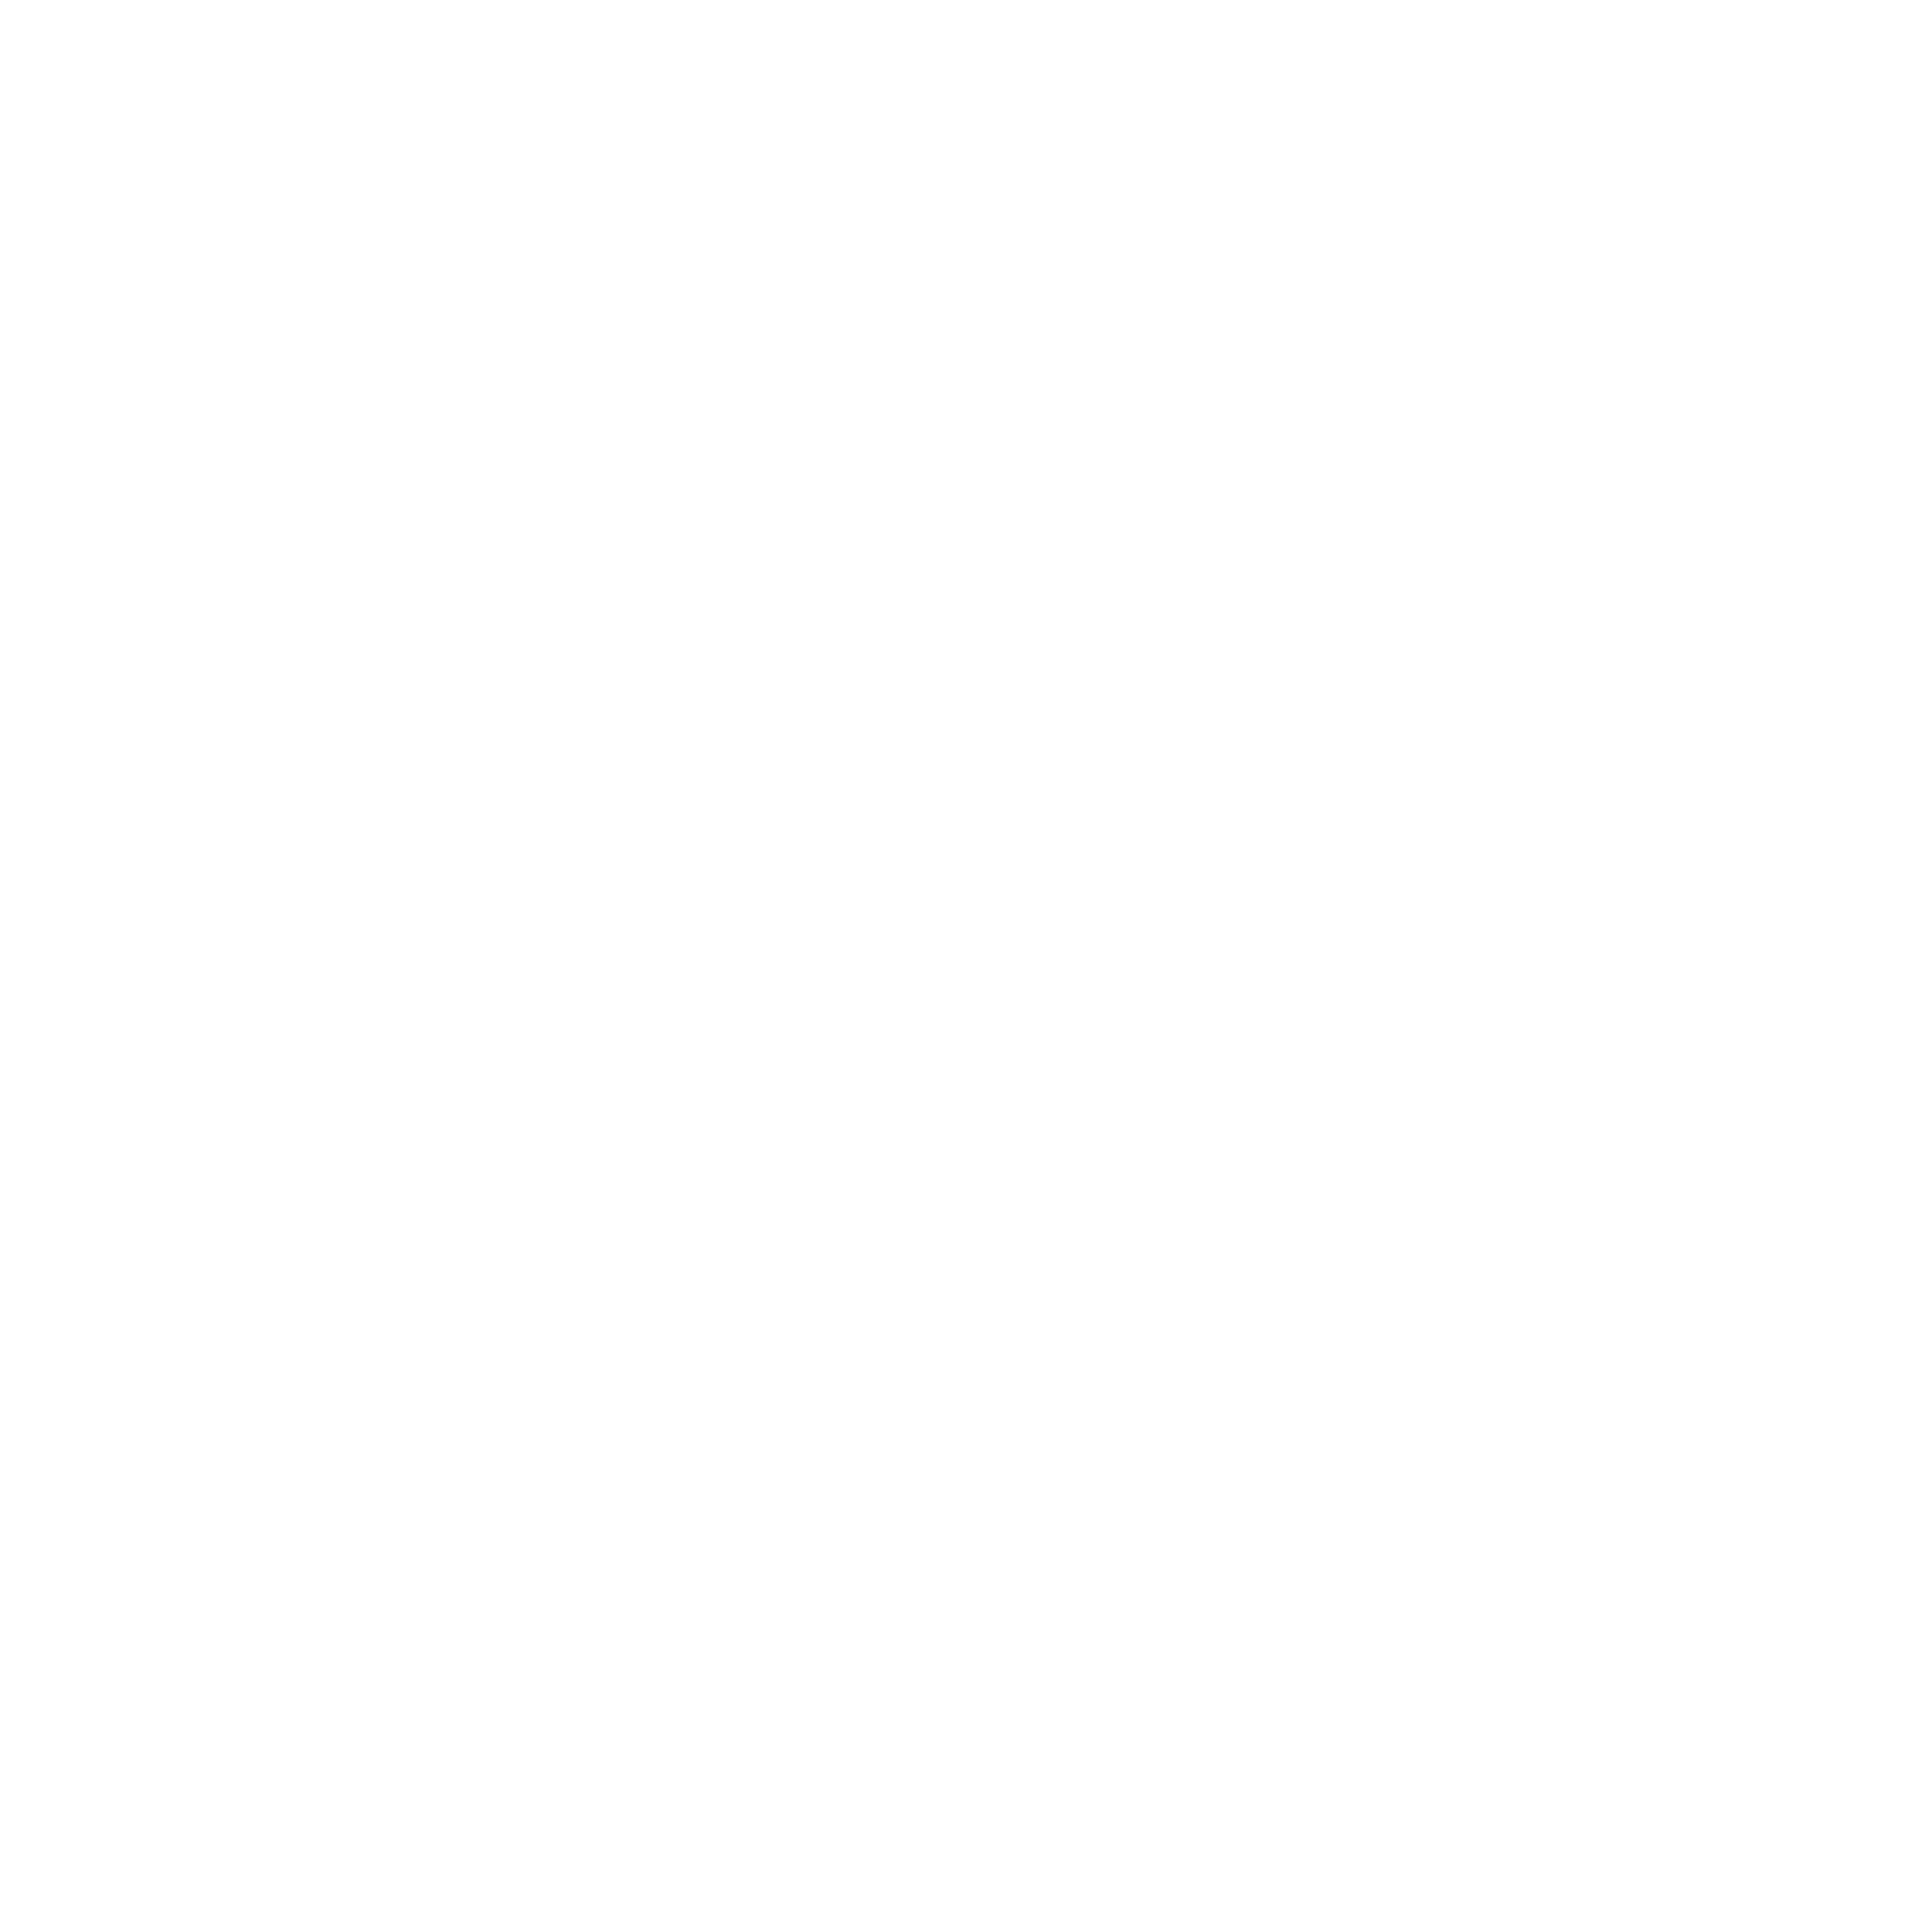 svg black and white Laws clipart legal aid. Home voss attorneys conveyancer.